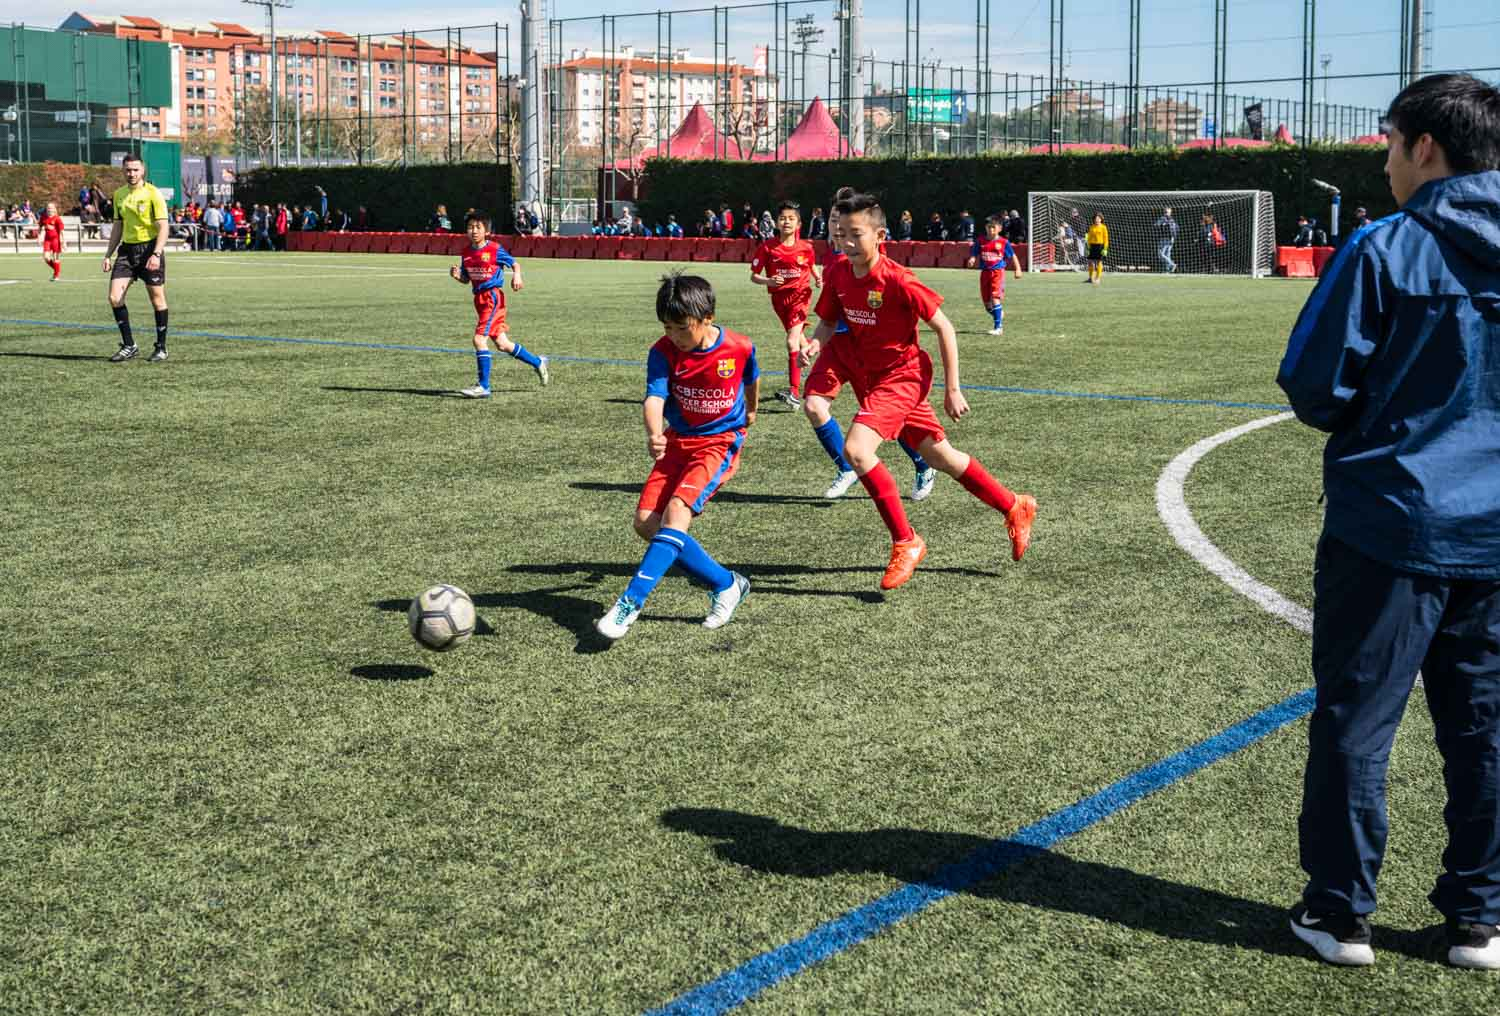 FCBEscola International Tournament Presented by Rakuten welcomed nearly 2000 youth footballers from 6 continents for the organization's biggest event yet.